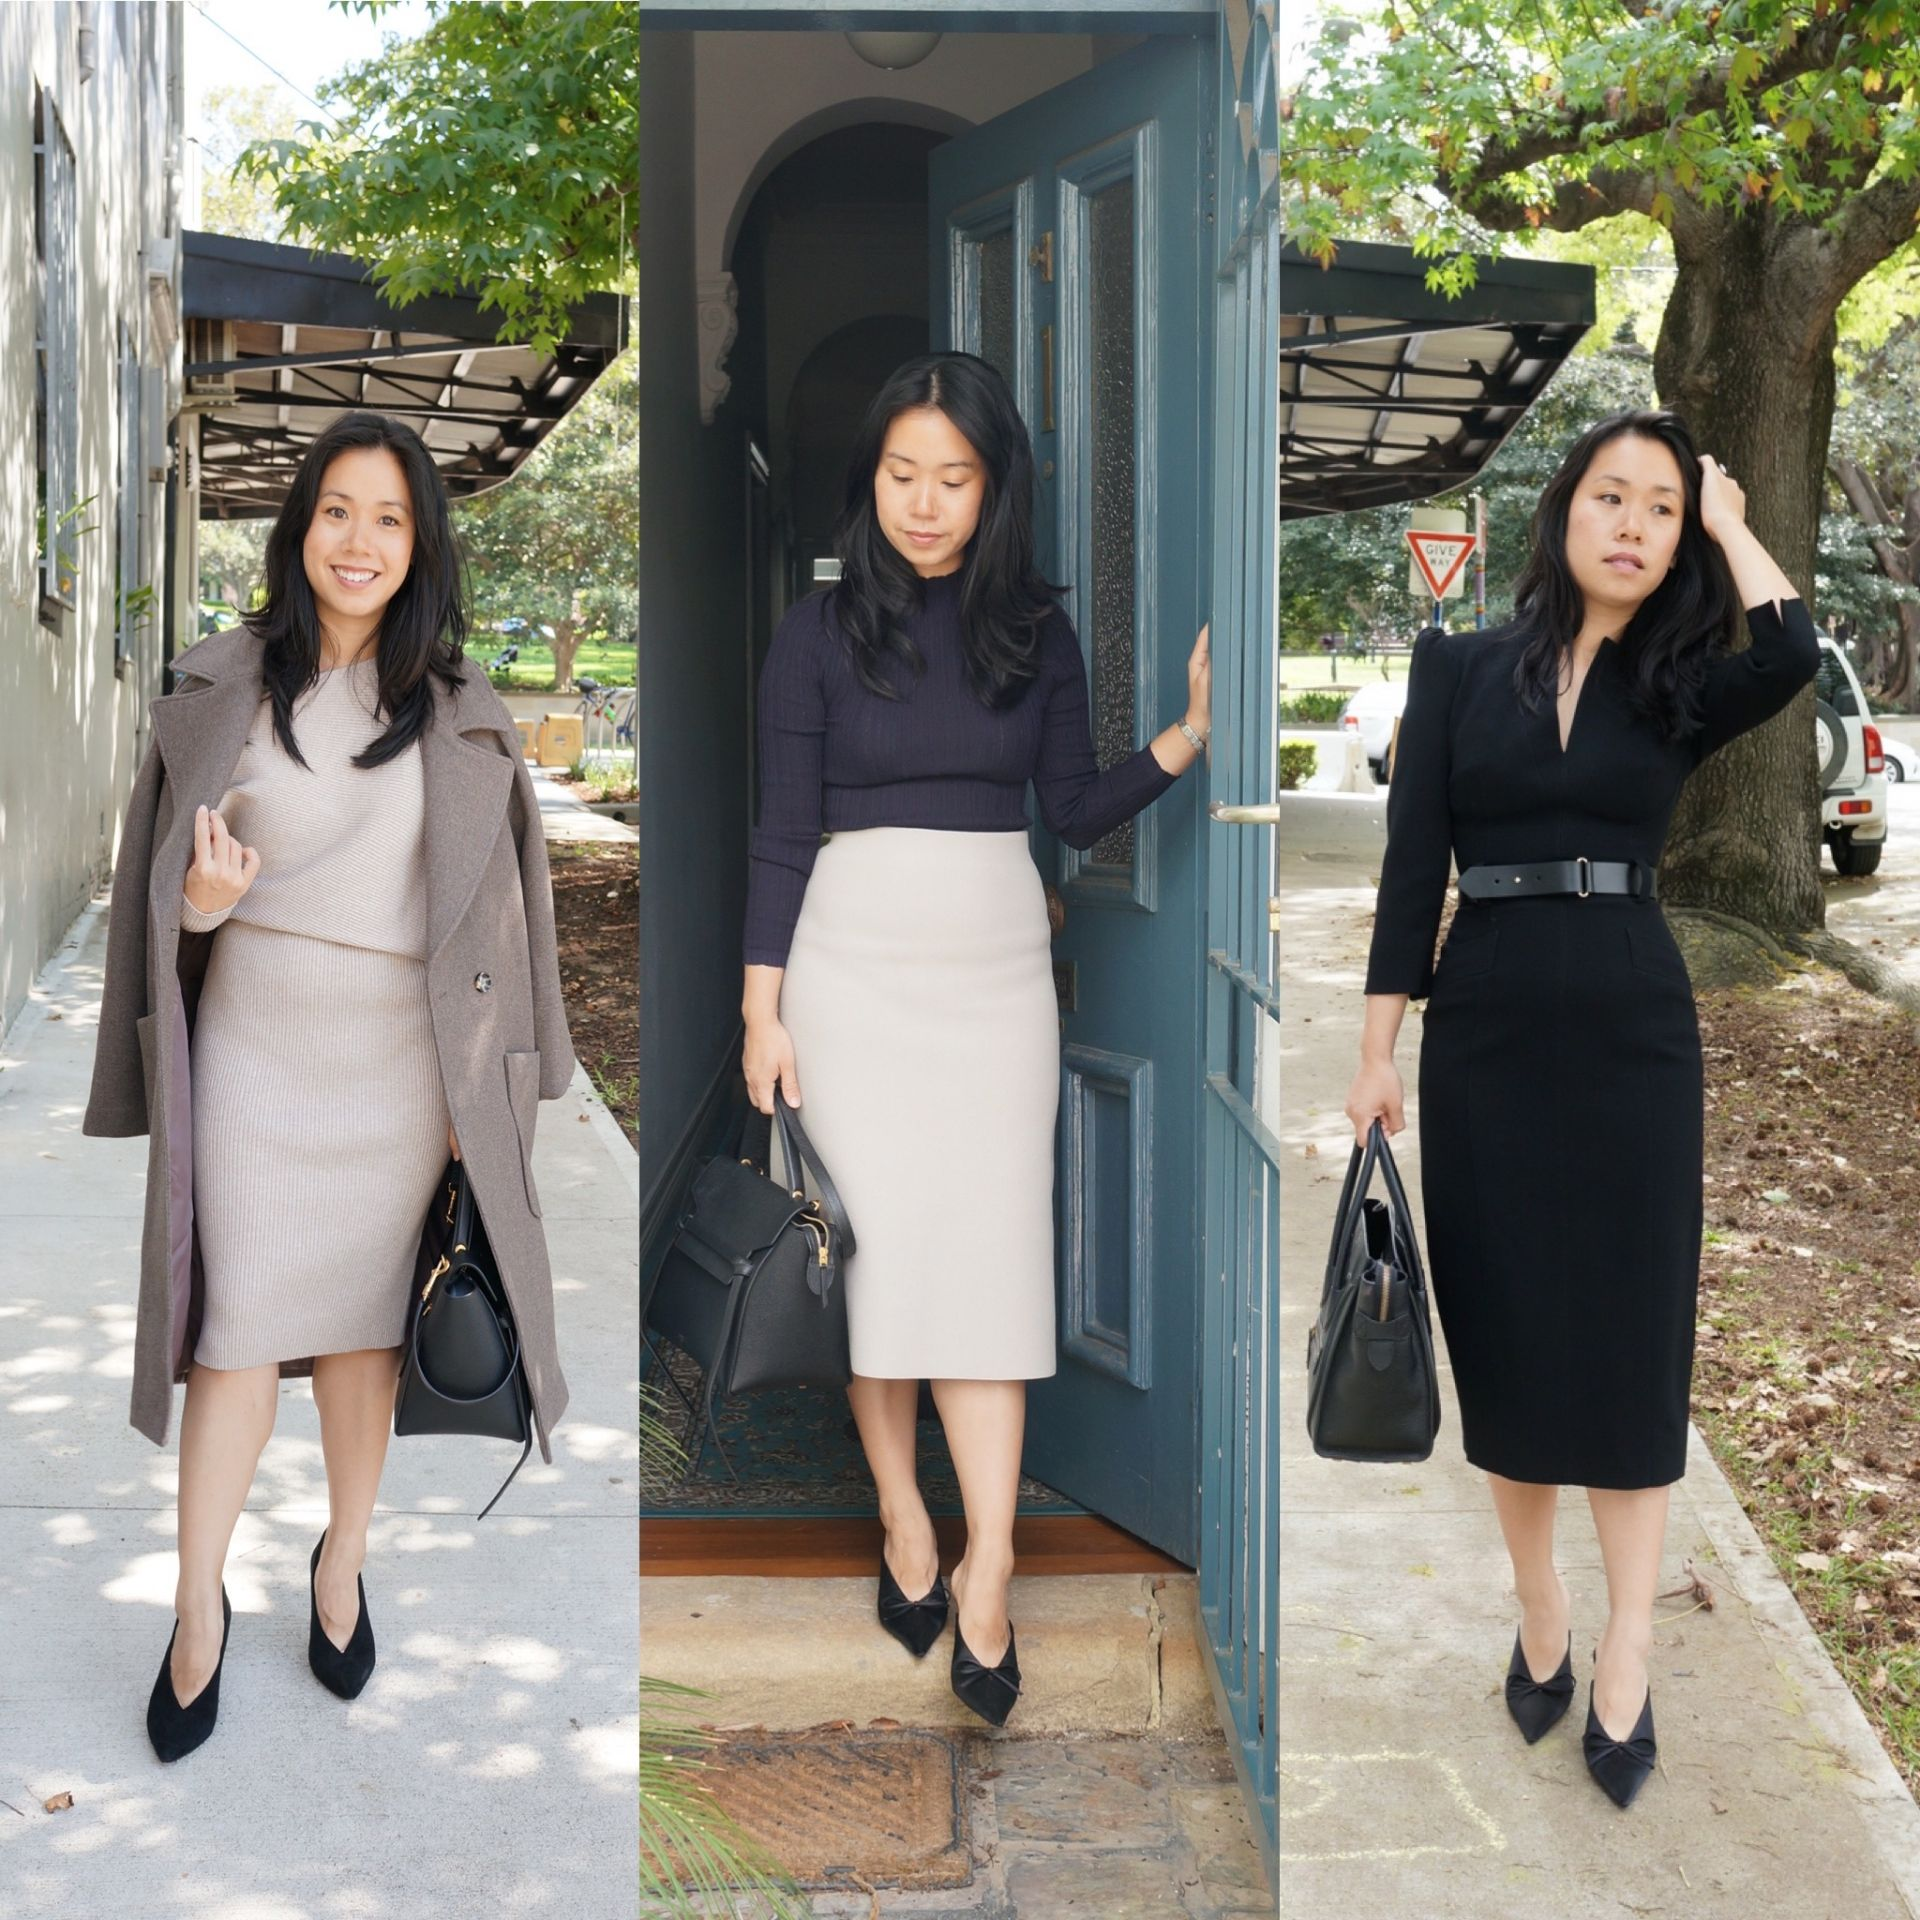 workwear style blog, personal style for work, lawyer fashion, lawyer style, corporate style